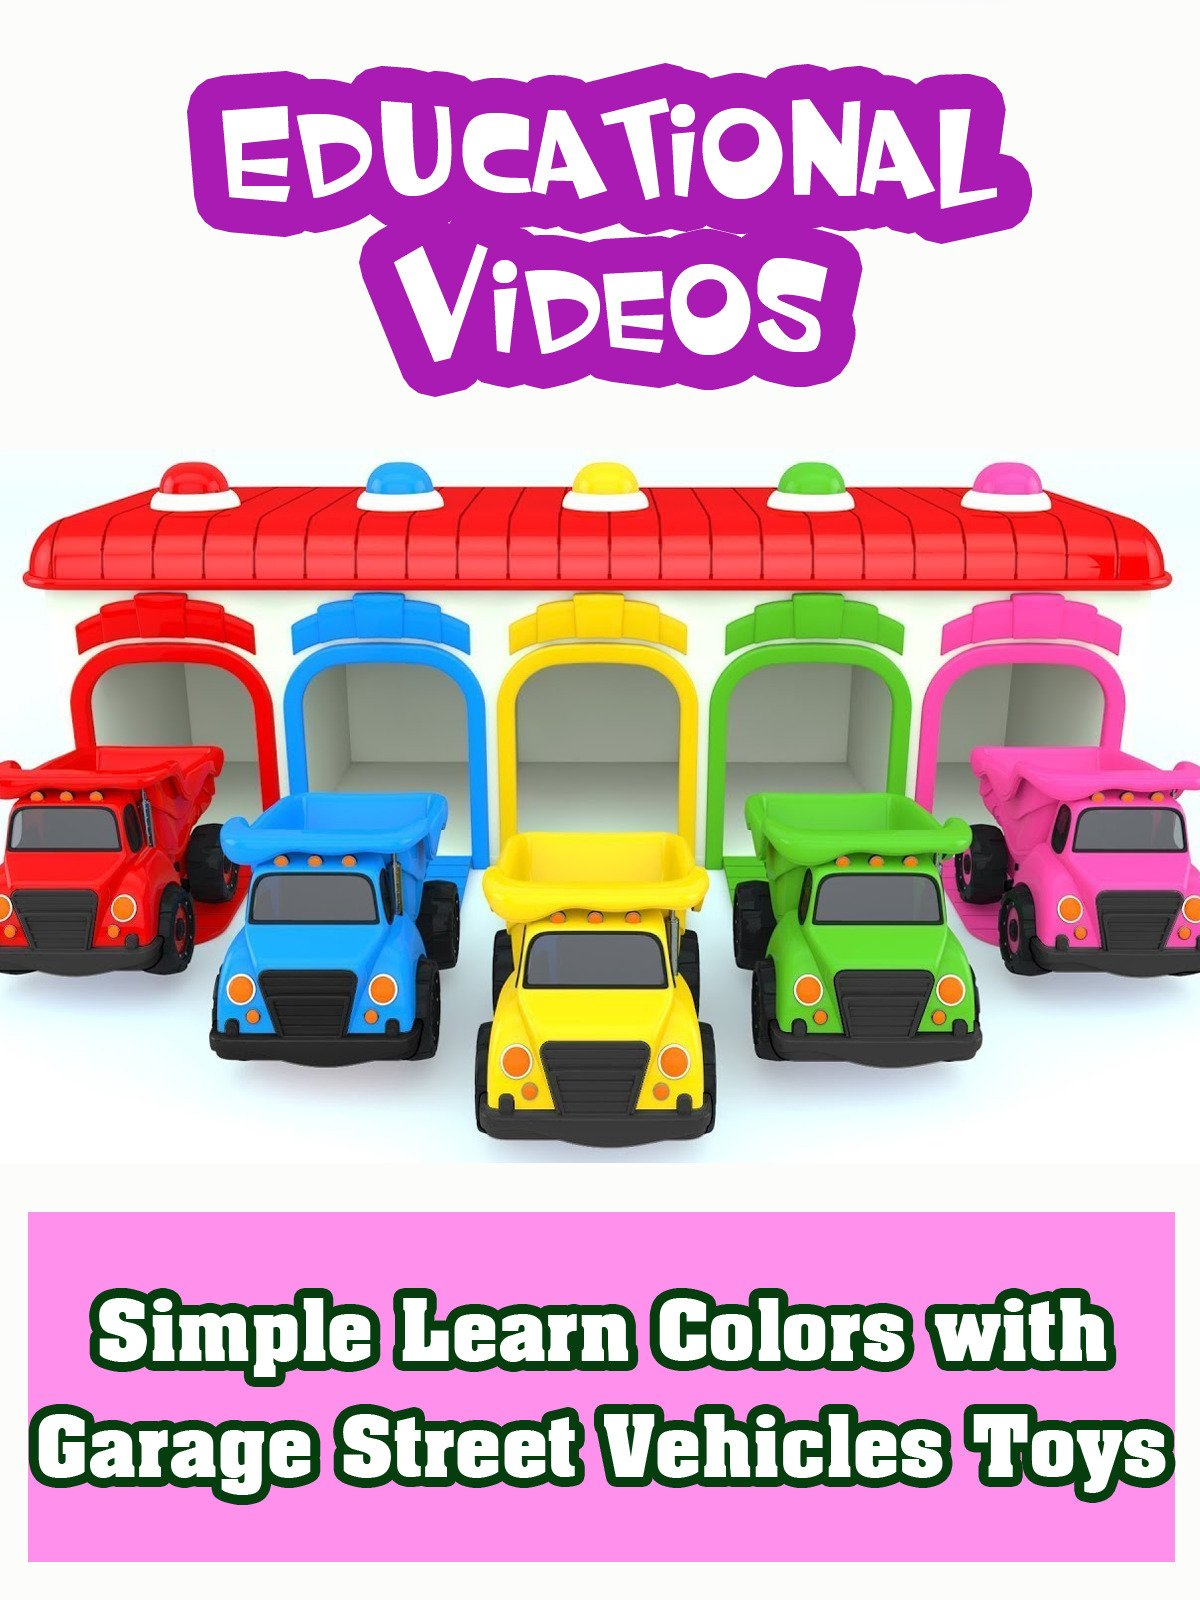 Simple Learn Colors with Garage Street Vehicles Toys